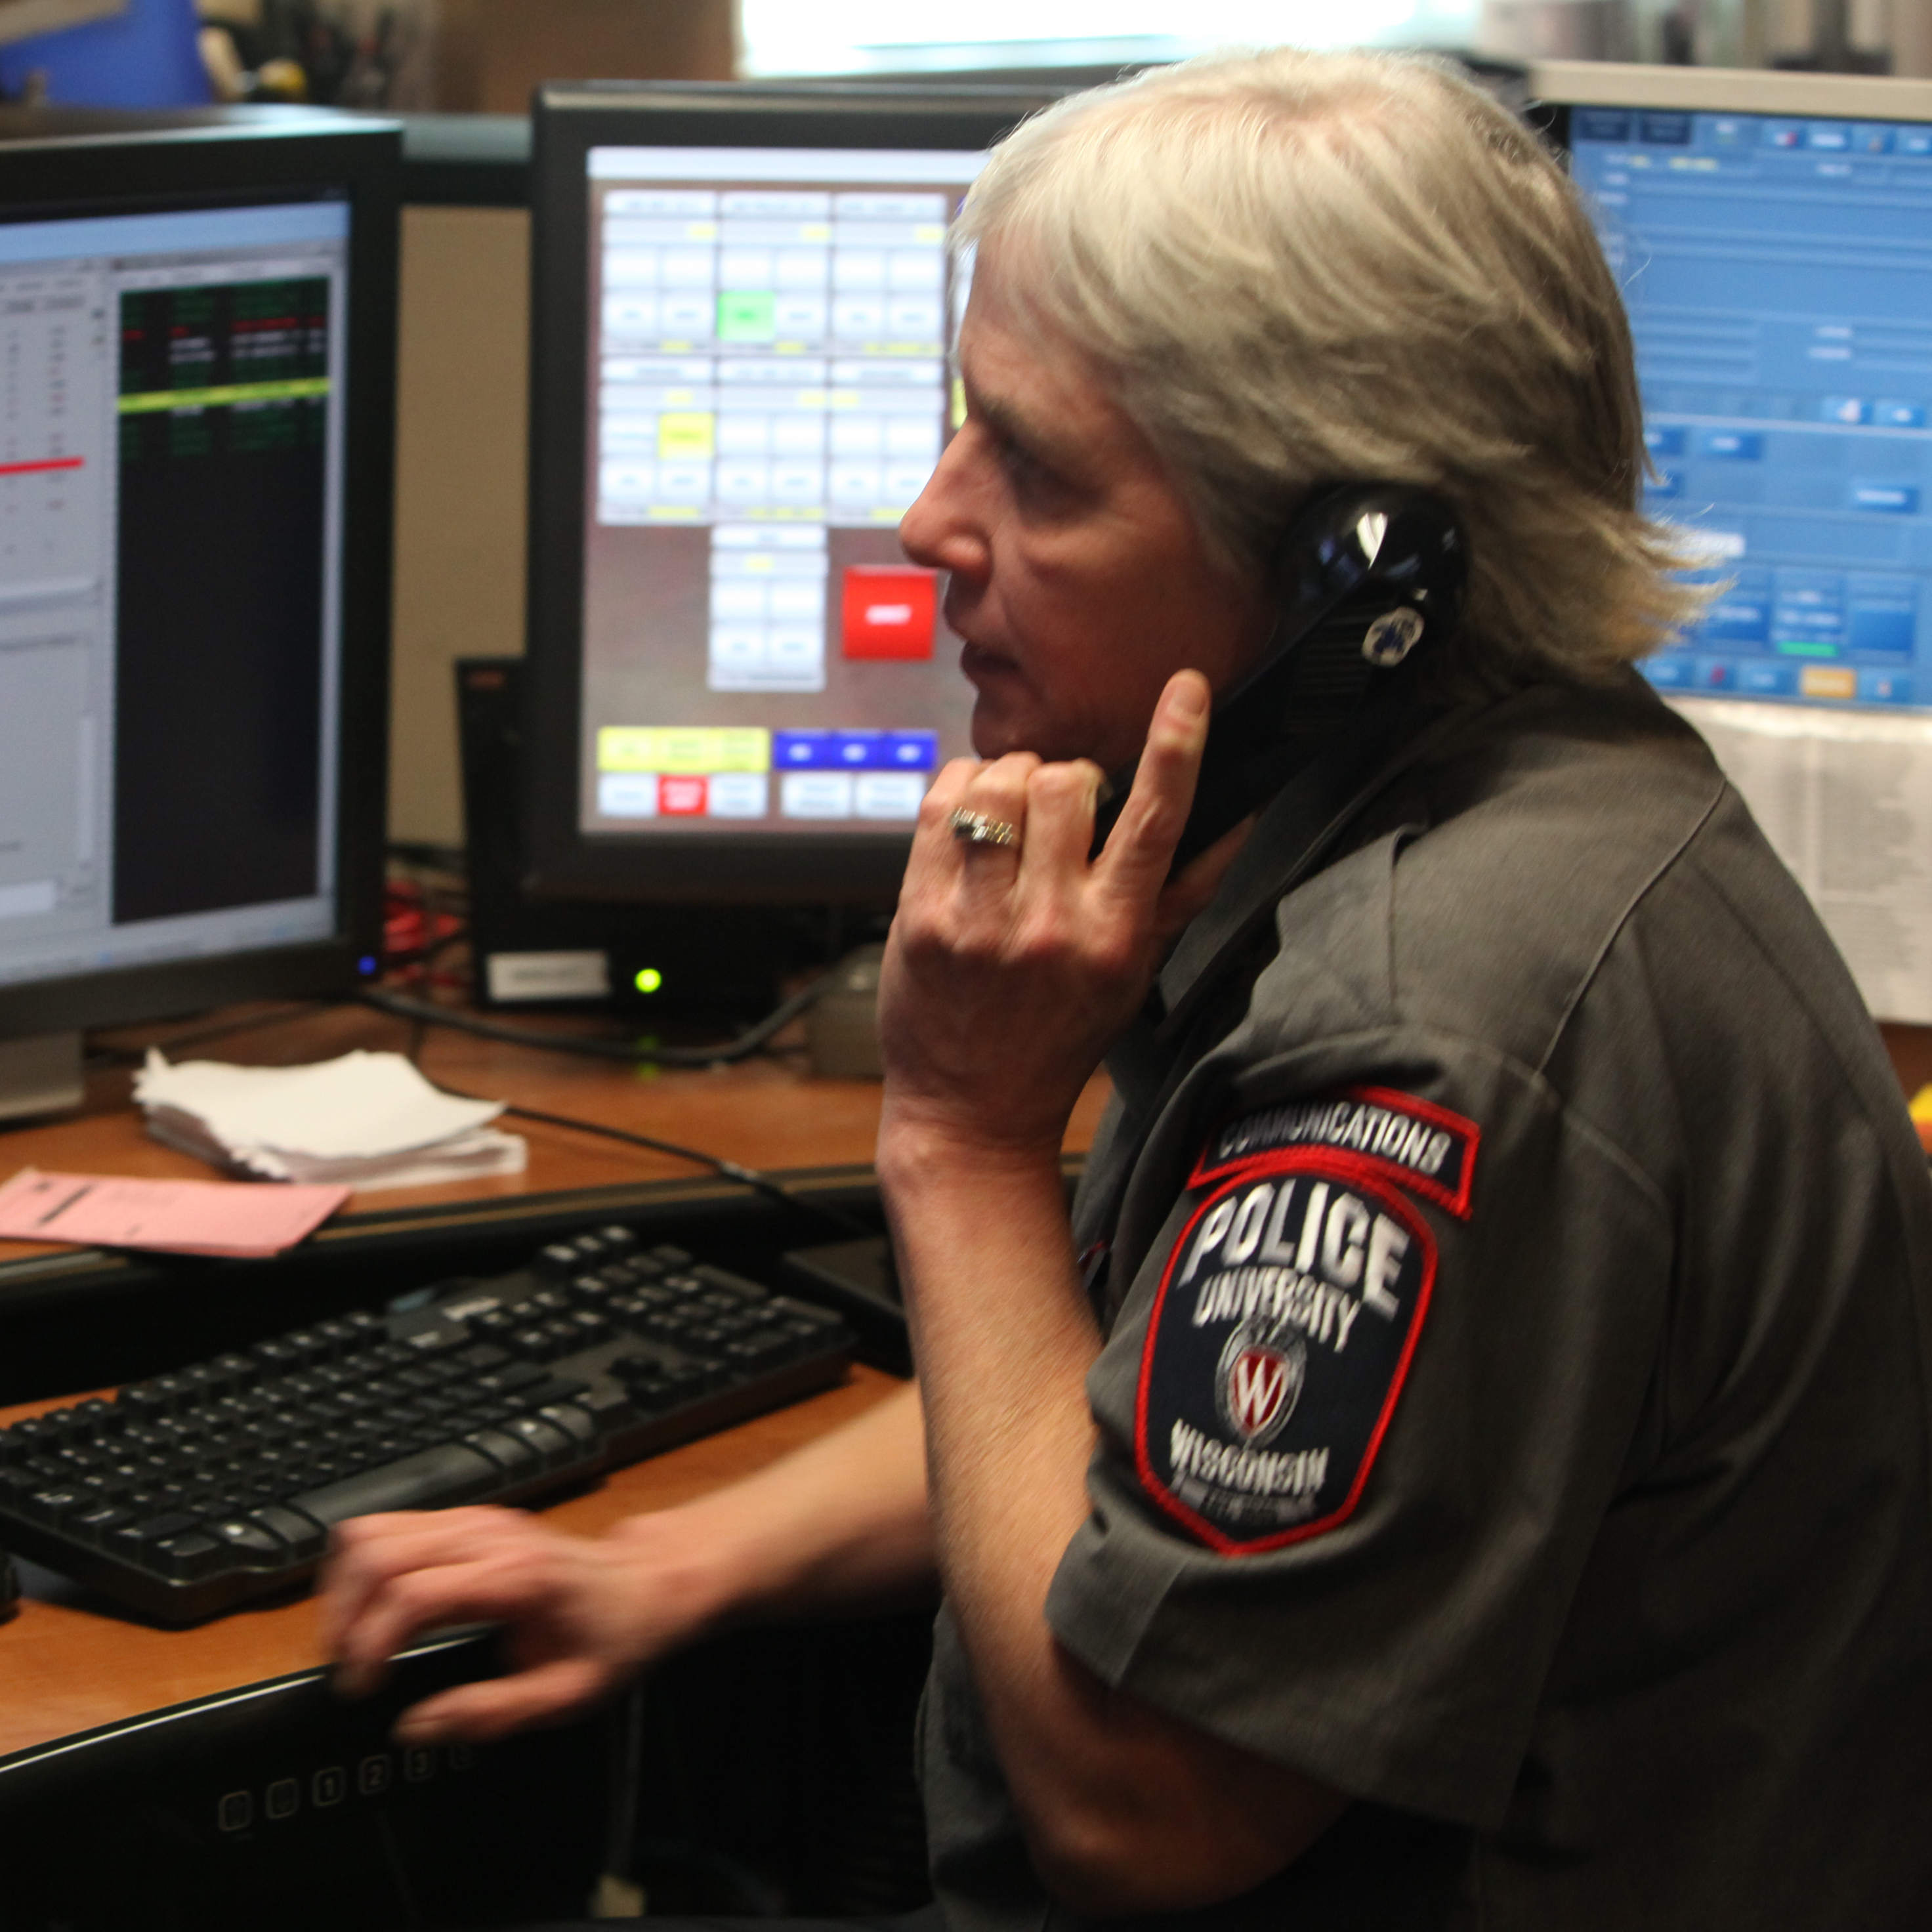 Phone sex line with dispatchers